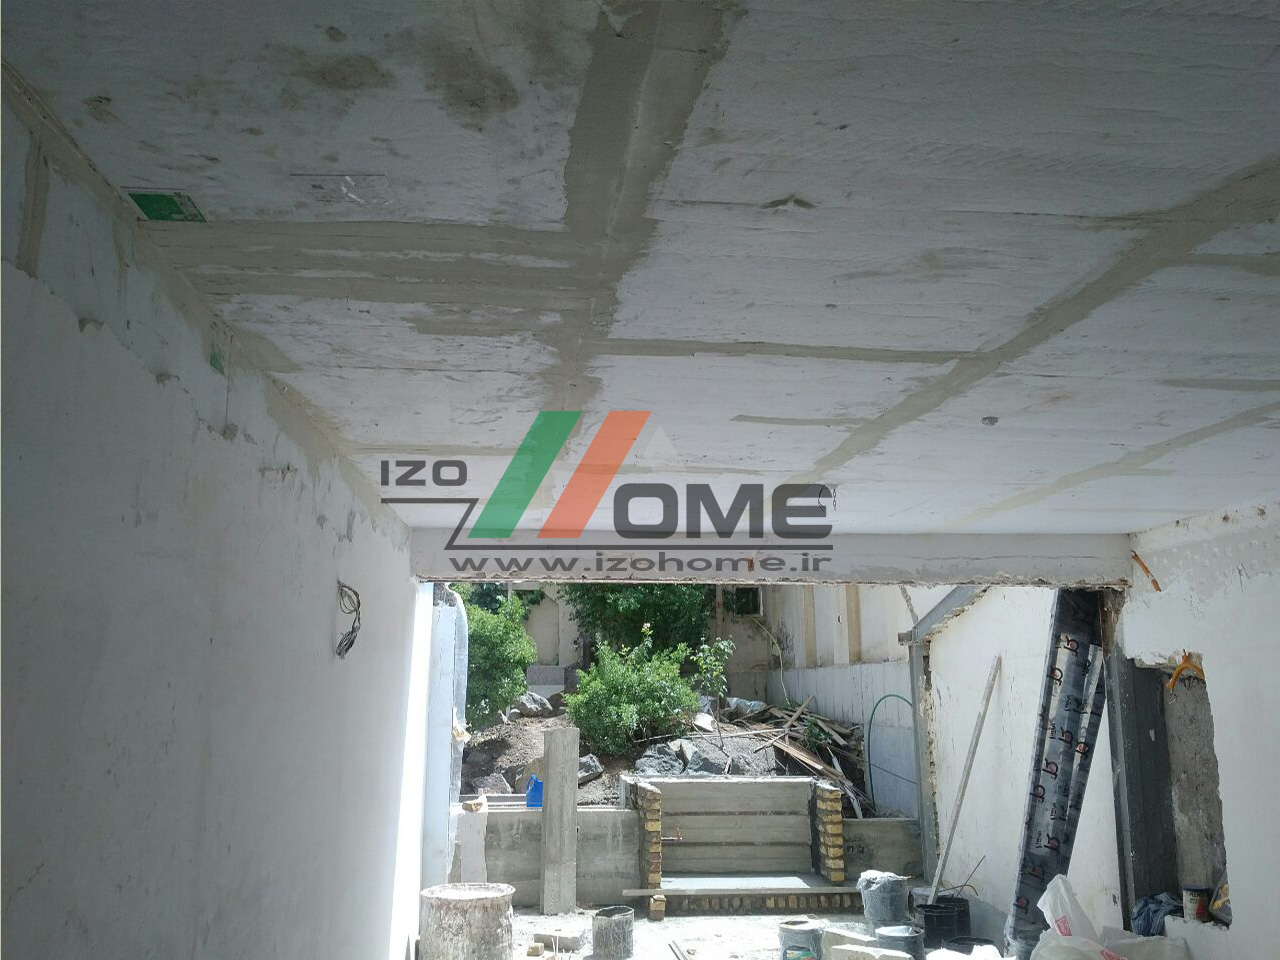 izohome45 - Thermal insulation for the roof